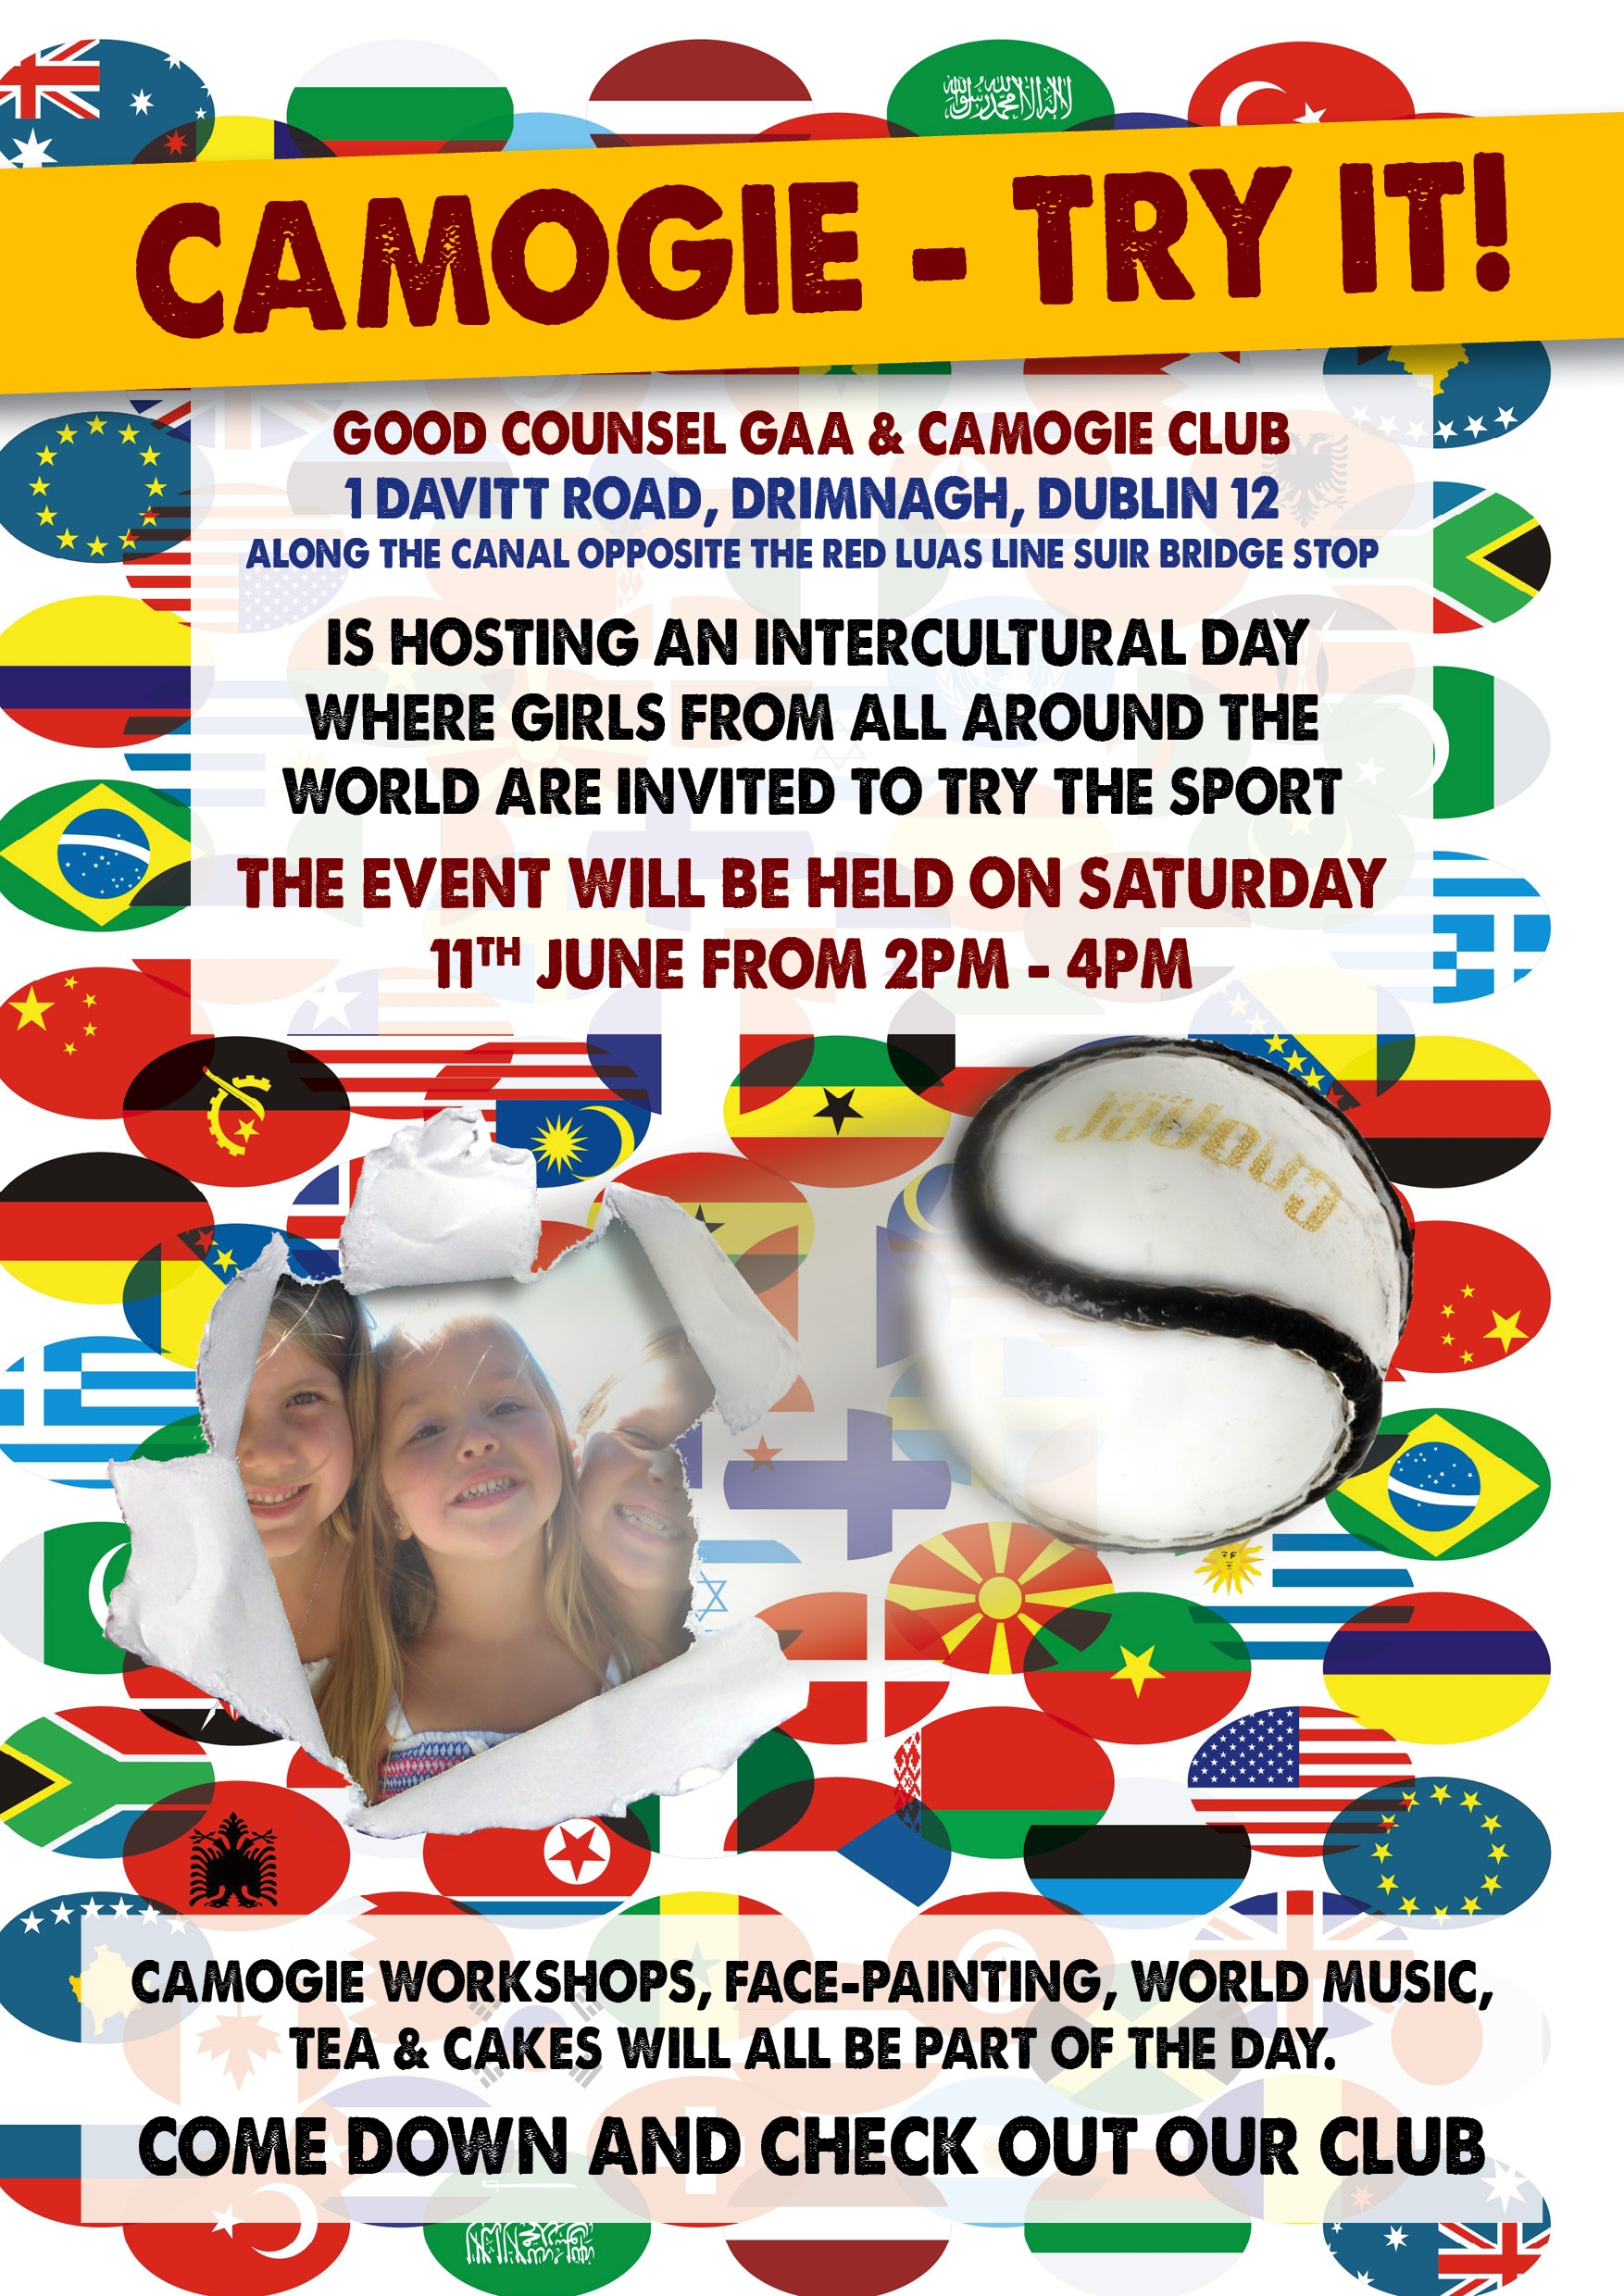 Camogie Intercultural Day